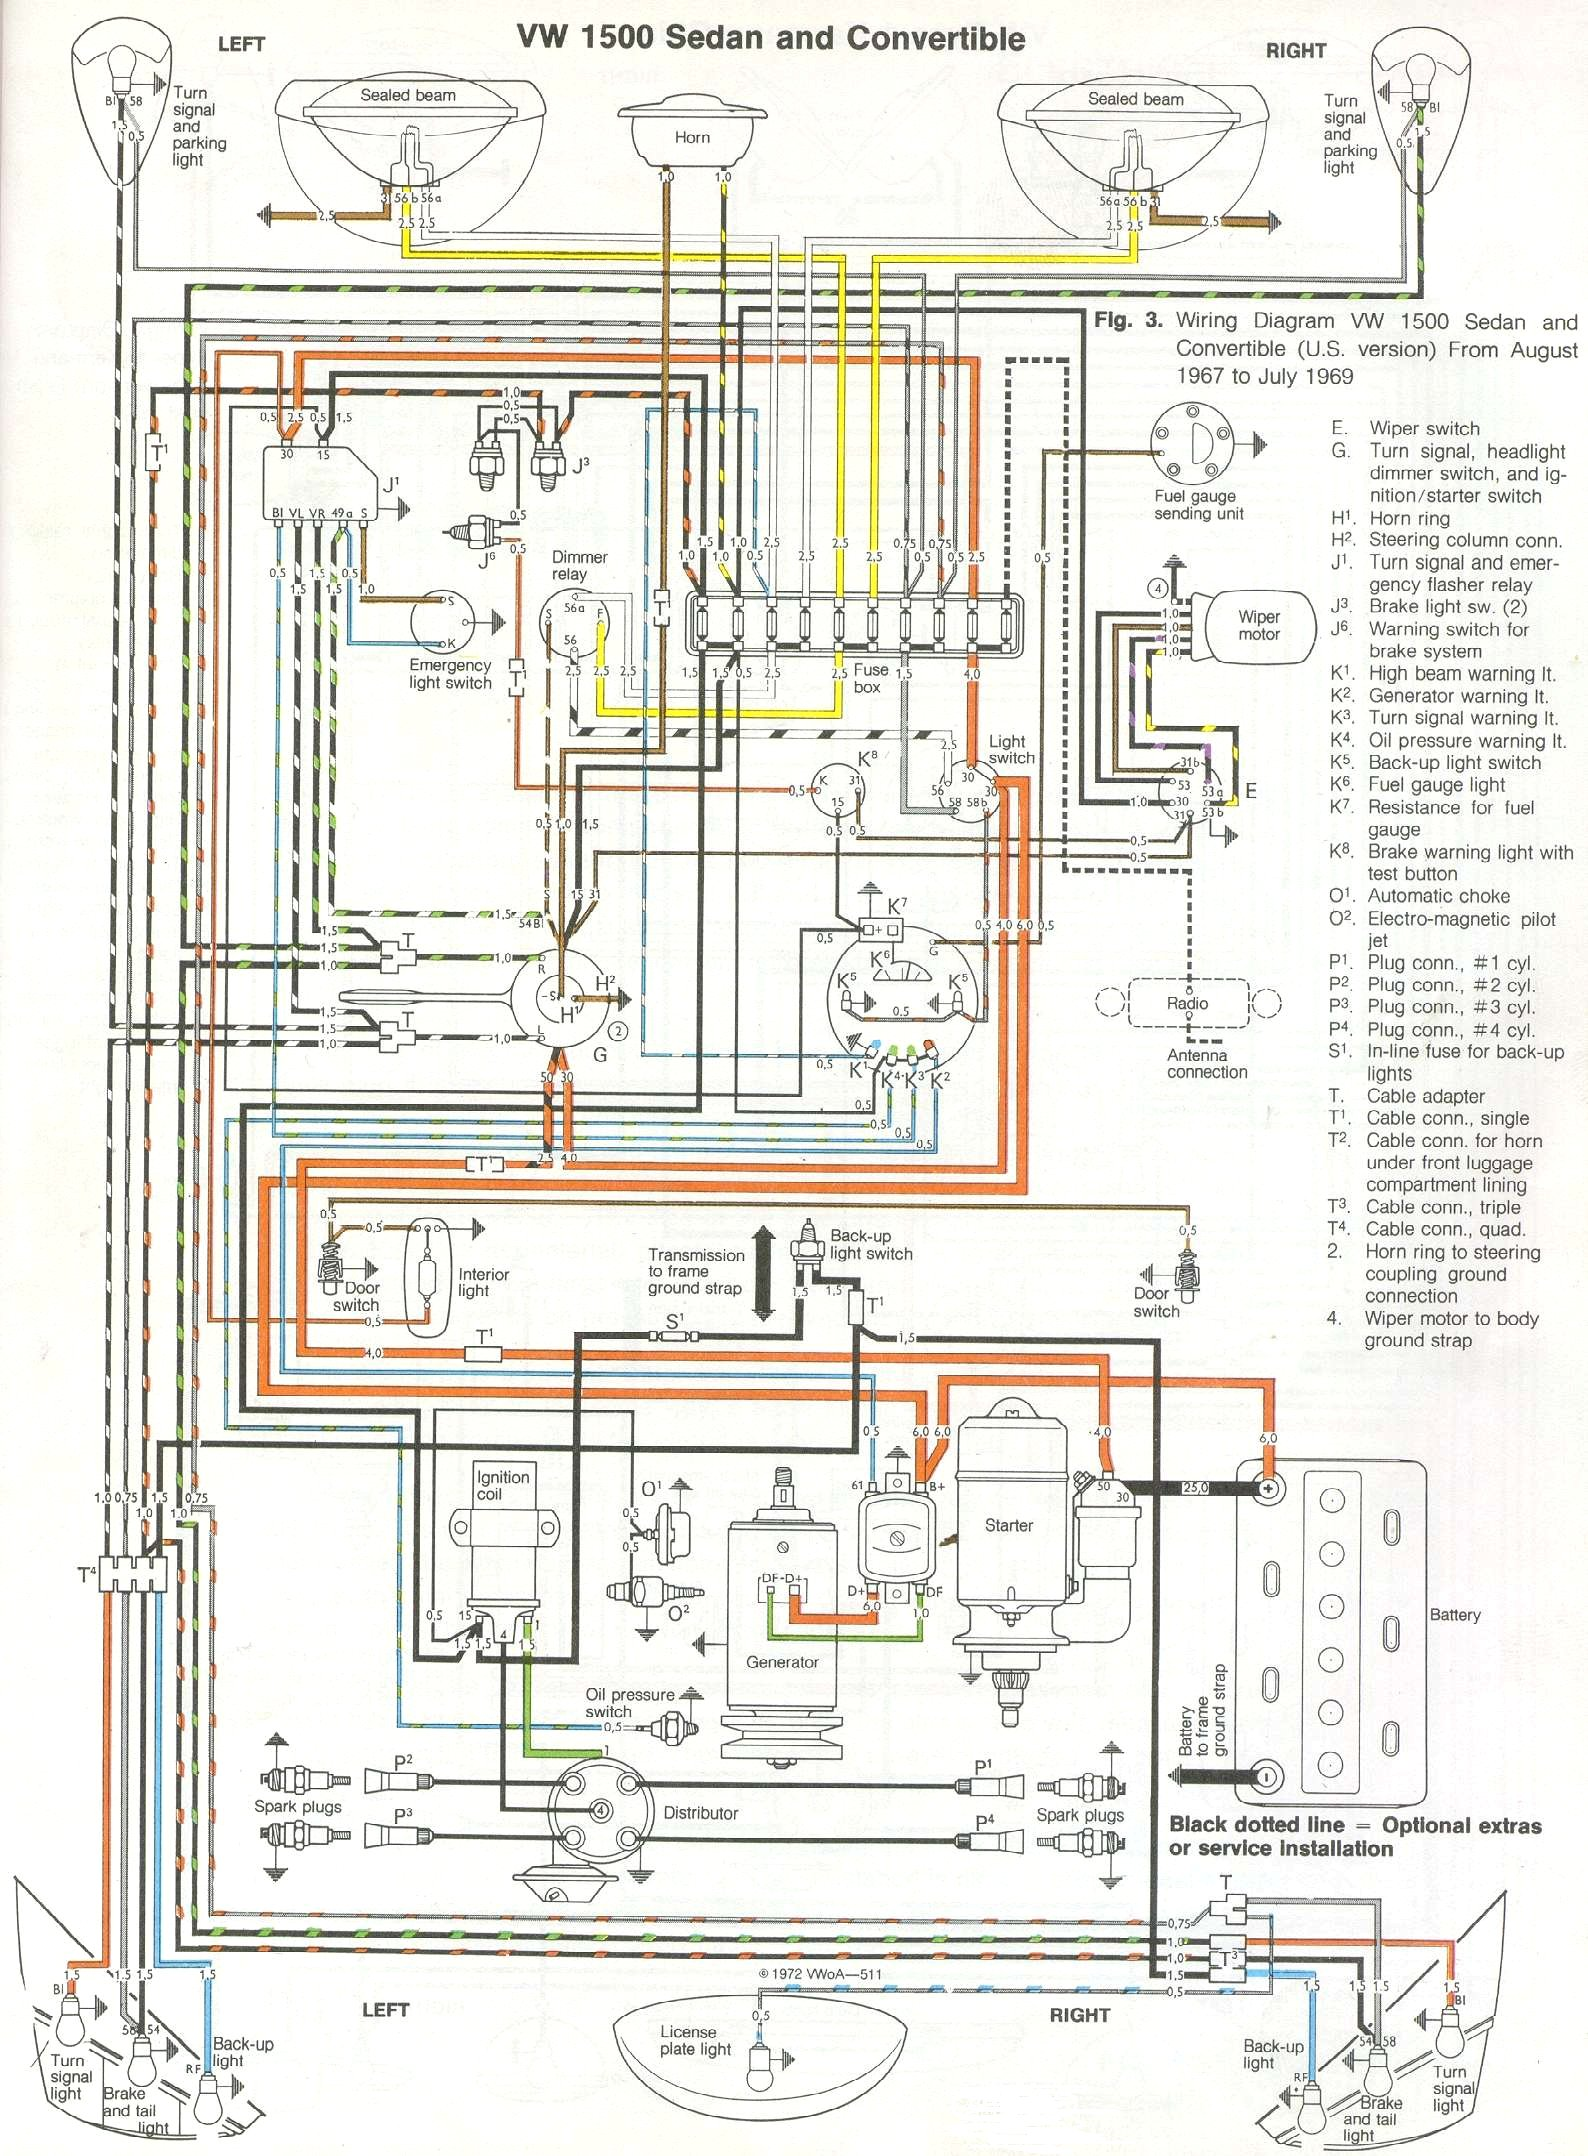 bug_6869 1969 71 beetle wiring diagram thegoldenbug com vw wiring diagrams at readyjetset.co